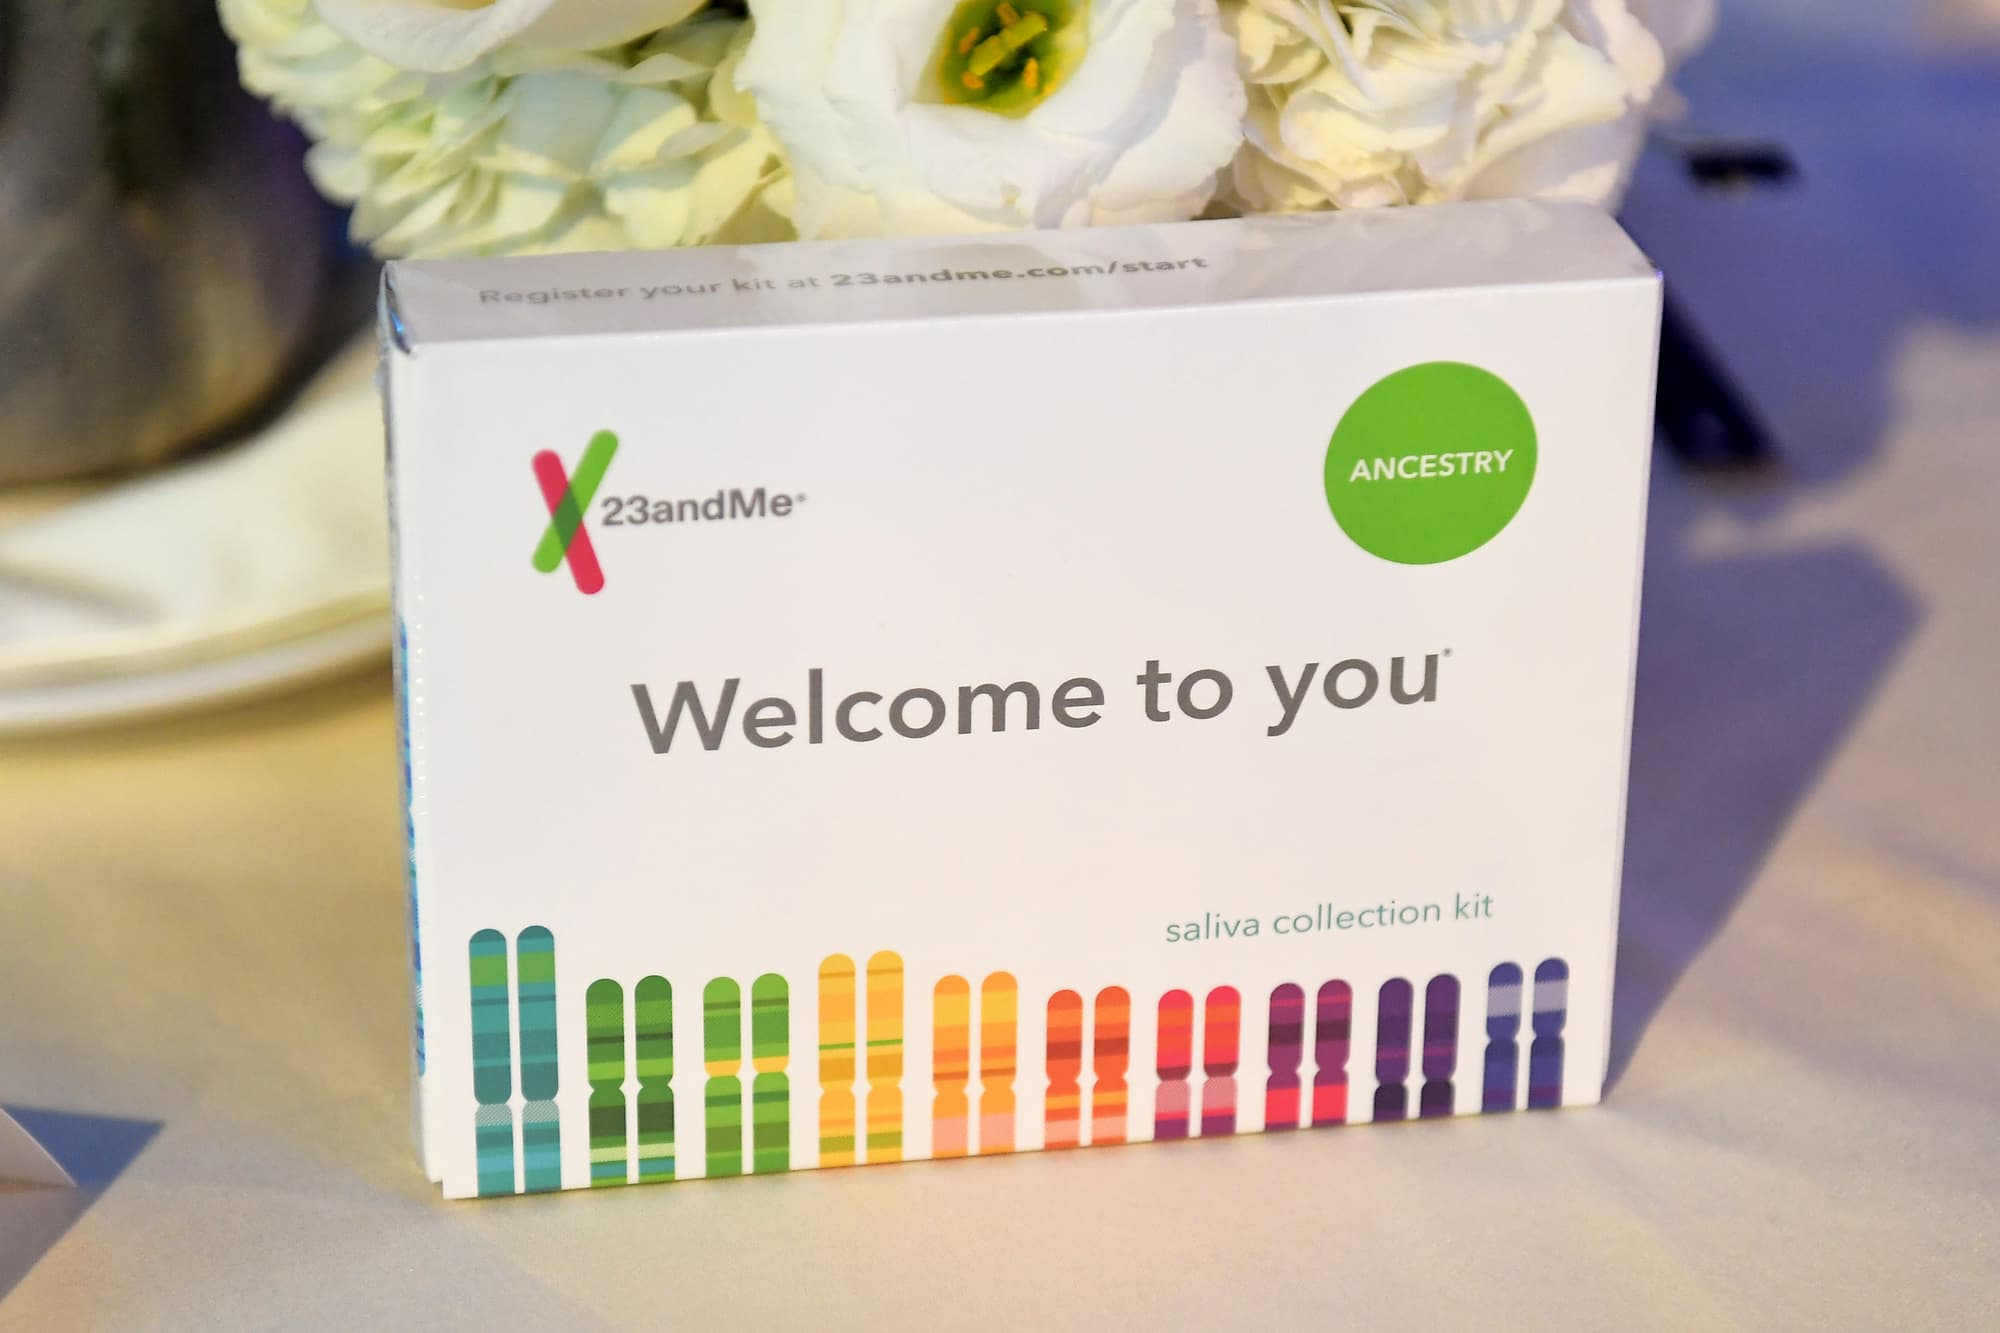 5 biggest risks of sharing DNA with consumer genetic testing